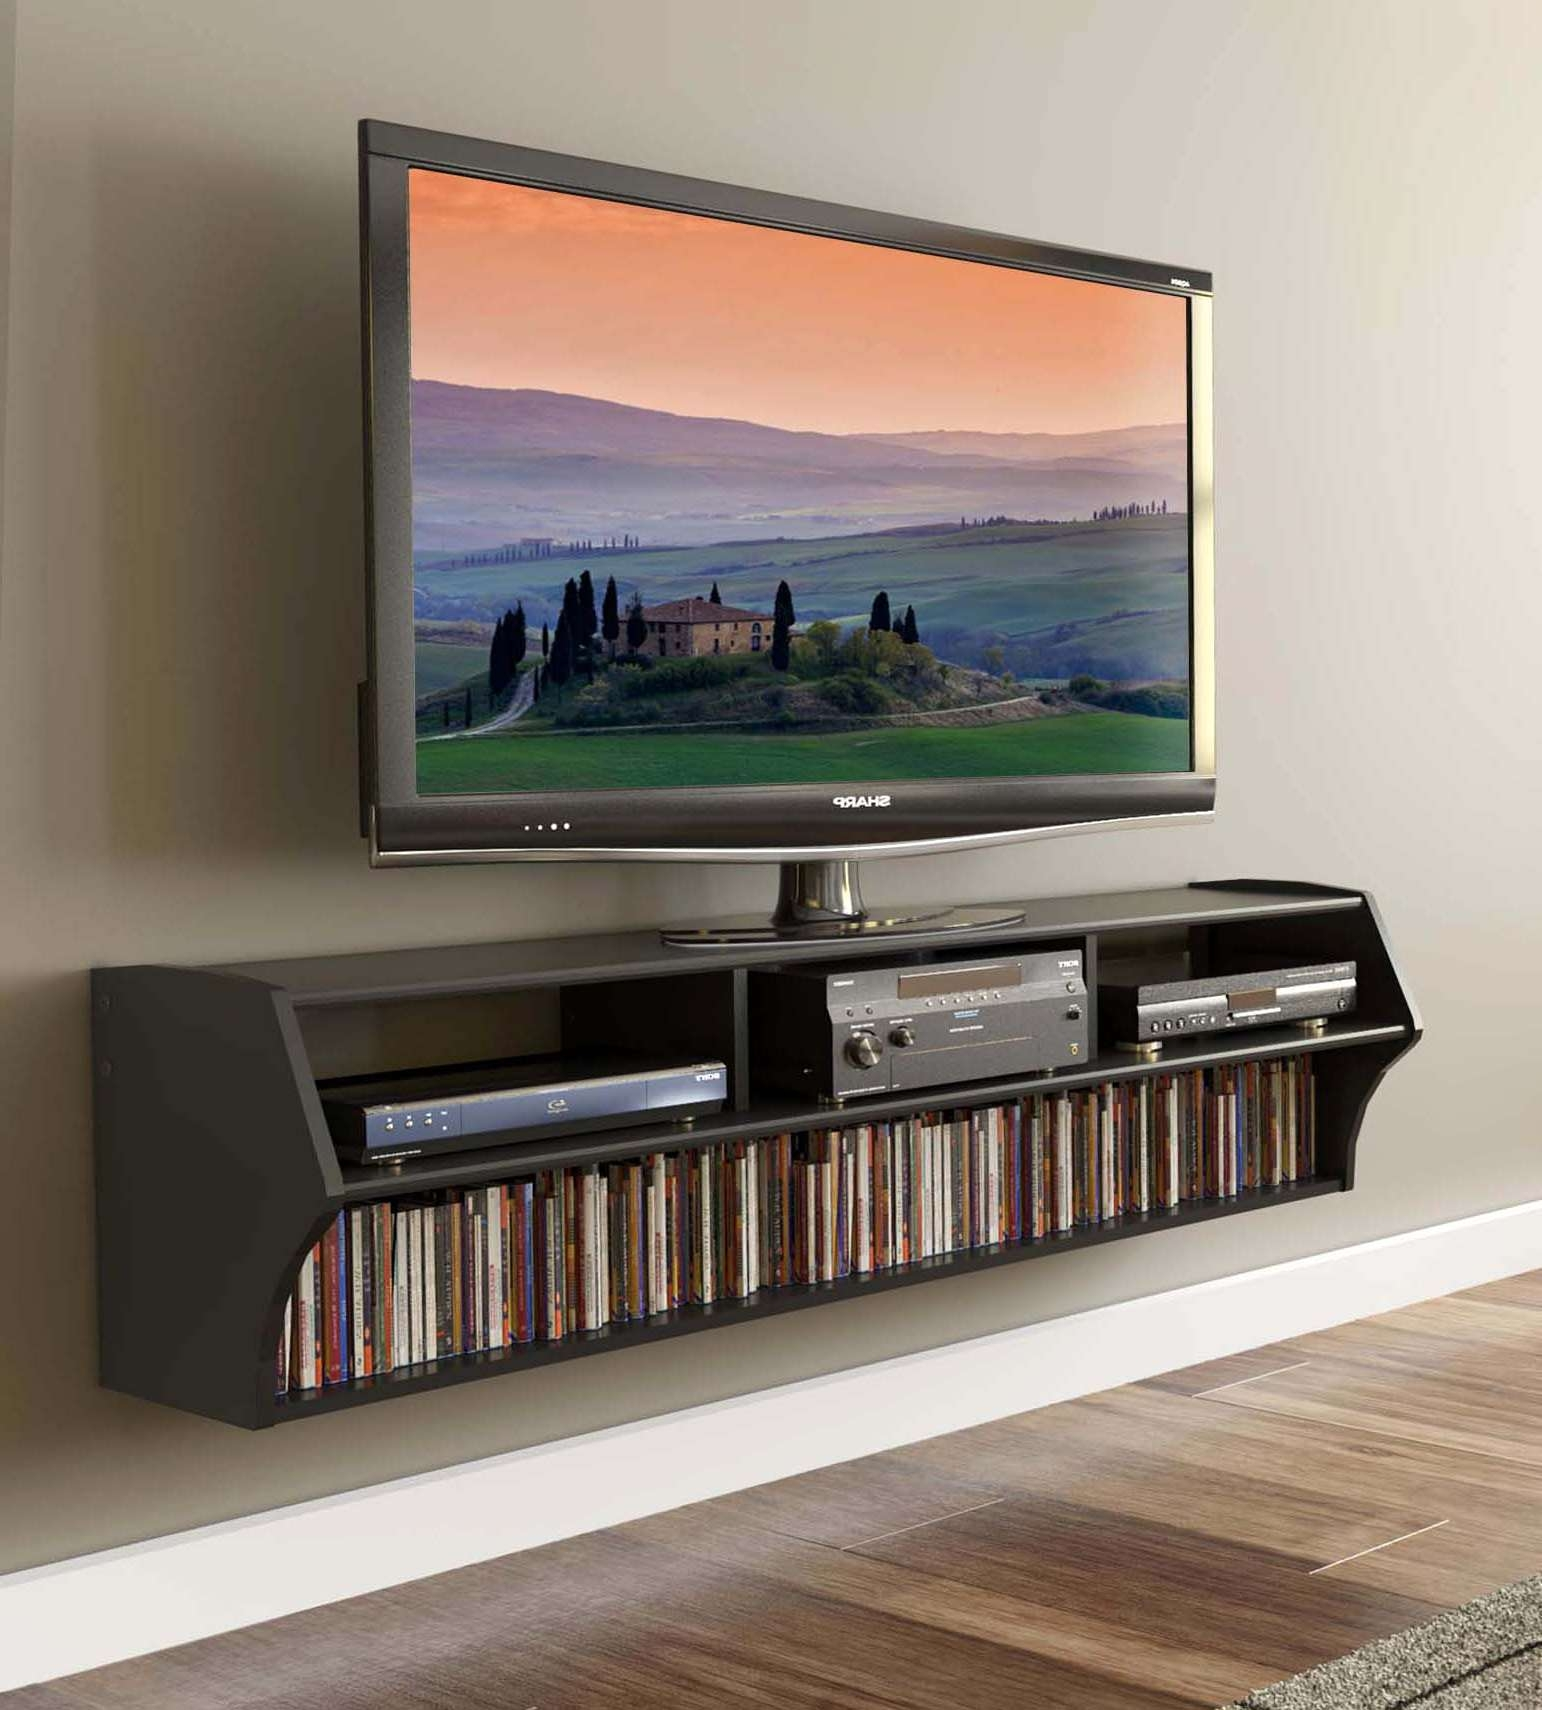 Tv : Intriguing Lockable Tv Stands Entertain Lockable Tv Stands Intended For Lockable Tv Stands (View 3 of 20)